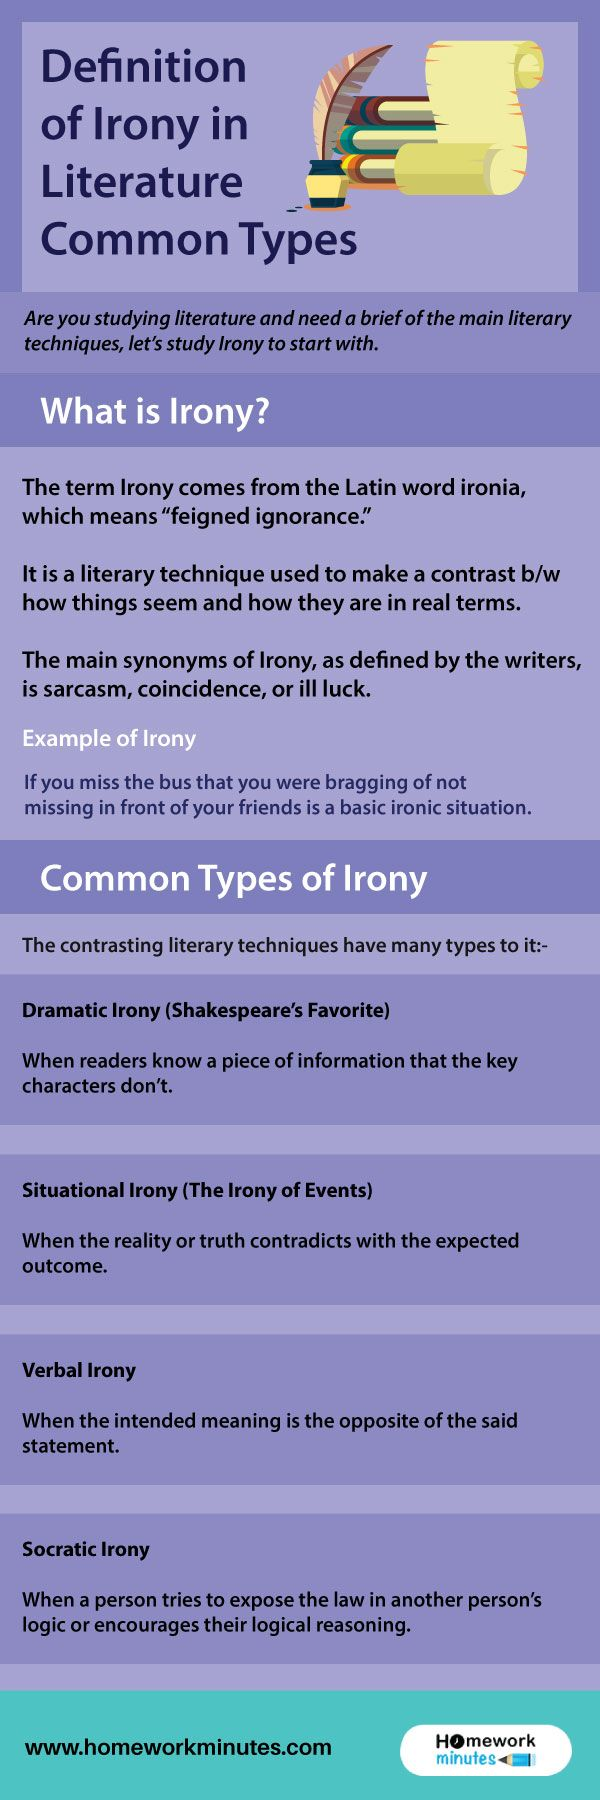 Definition of Irony in Literature Common Types howdo